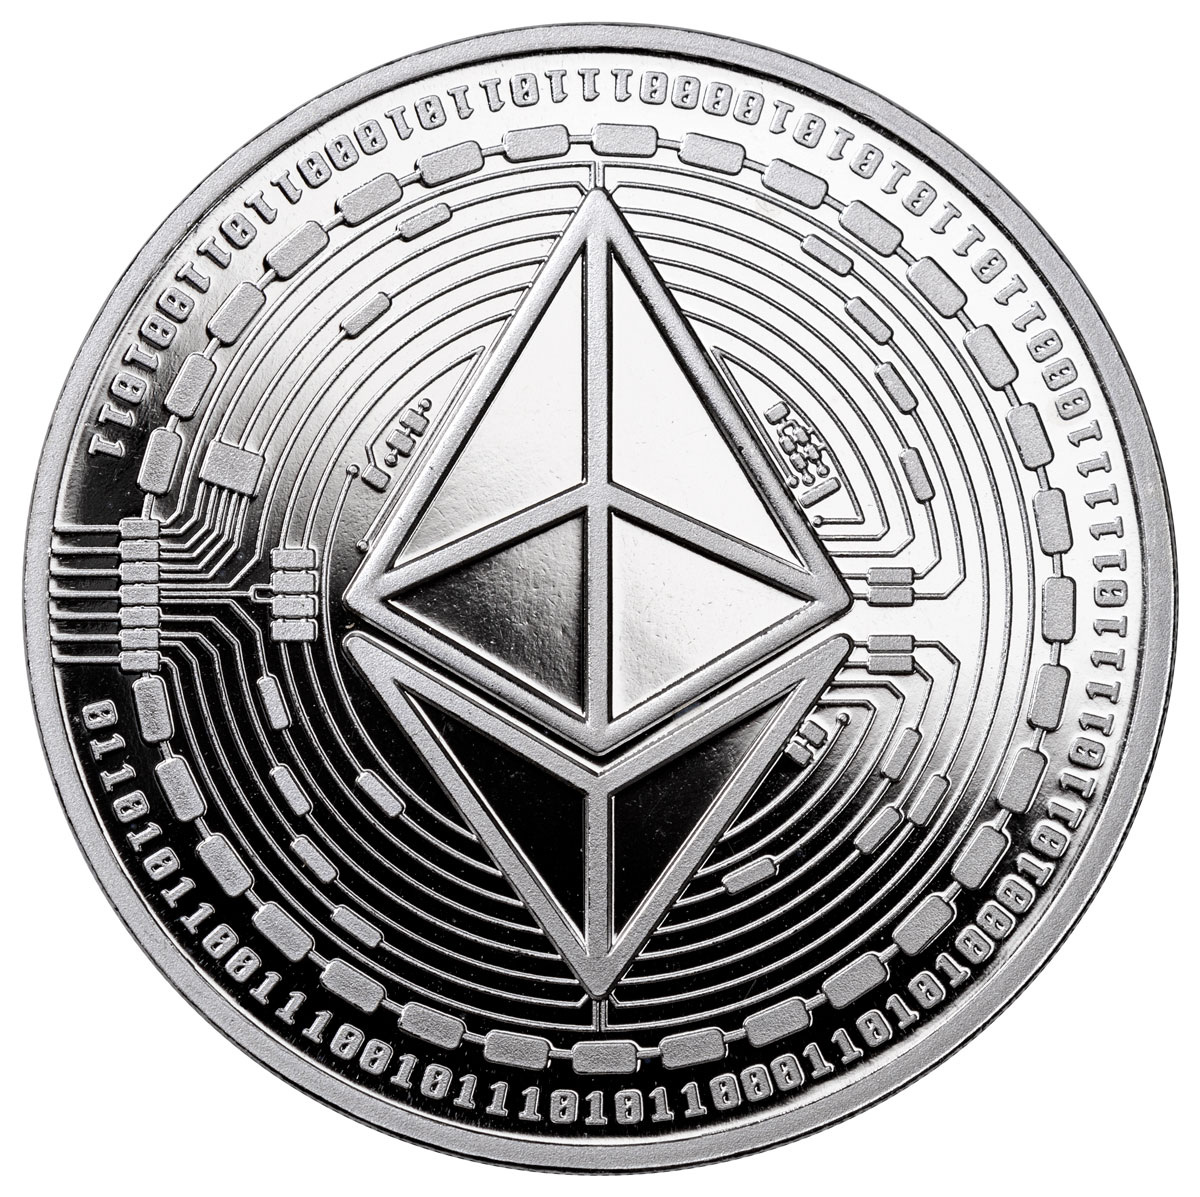 2020 Republic of Chad Fr5,000 1 oz Silver Ethereum Crypto Currency Proof Coin GEM Proof